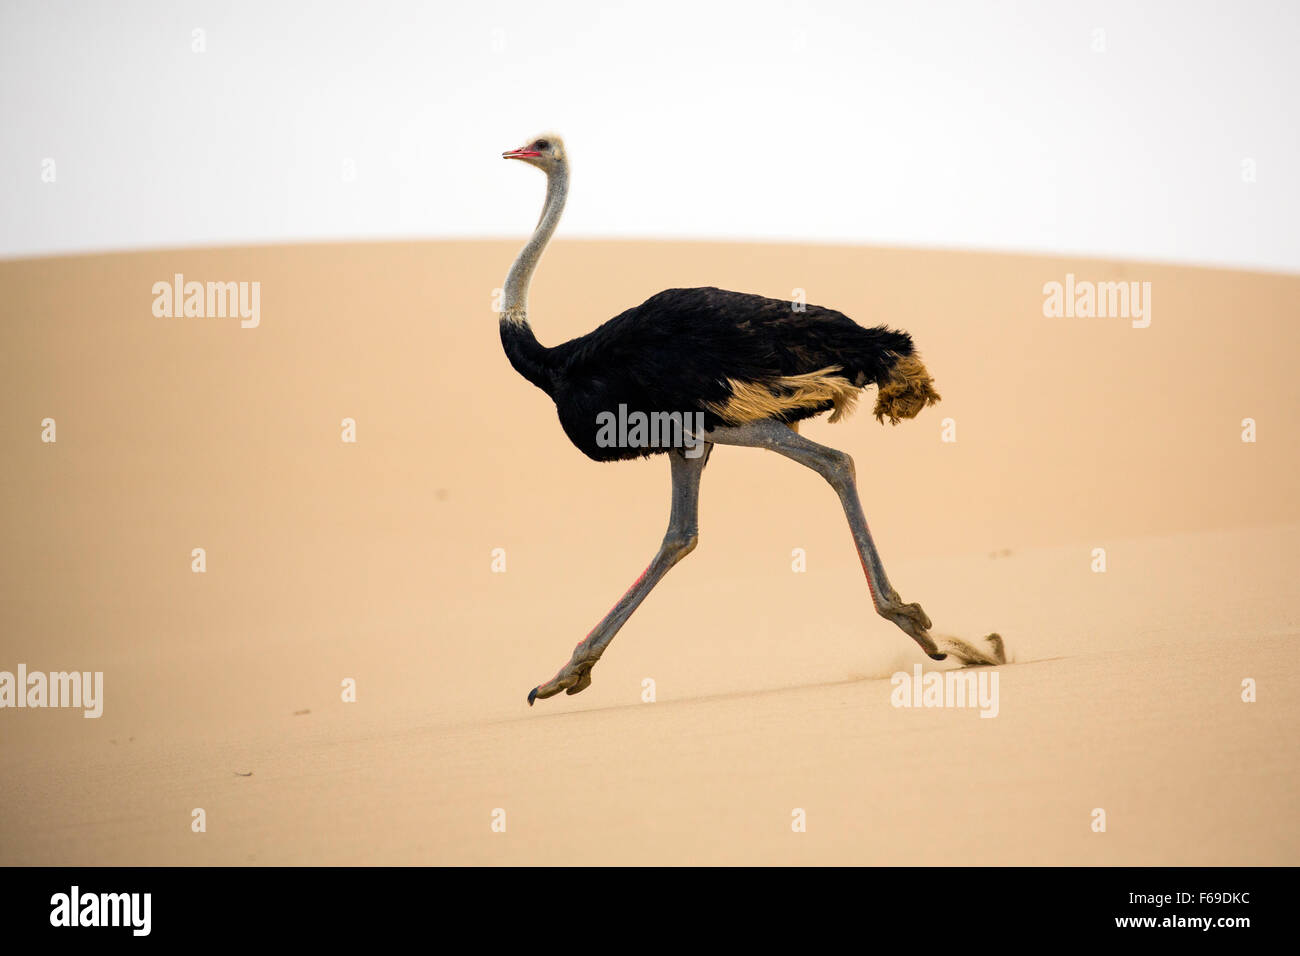 Ostrich running across sand dunes at Sandwich Harbor, Namibia, Africa Stock Photo